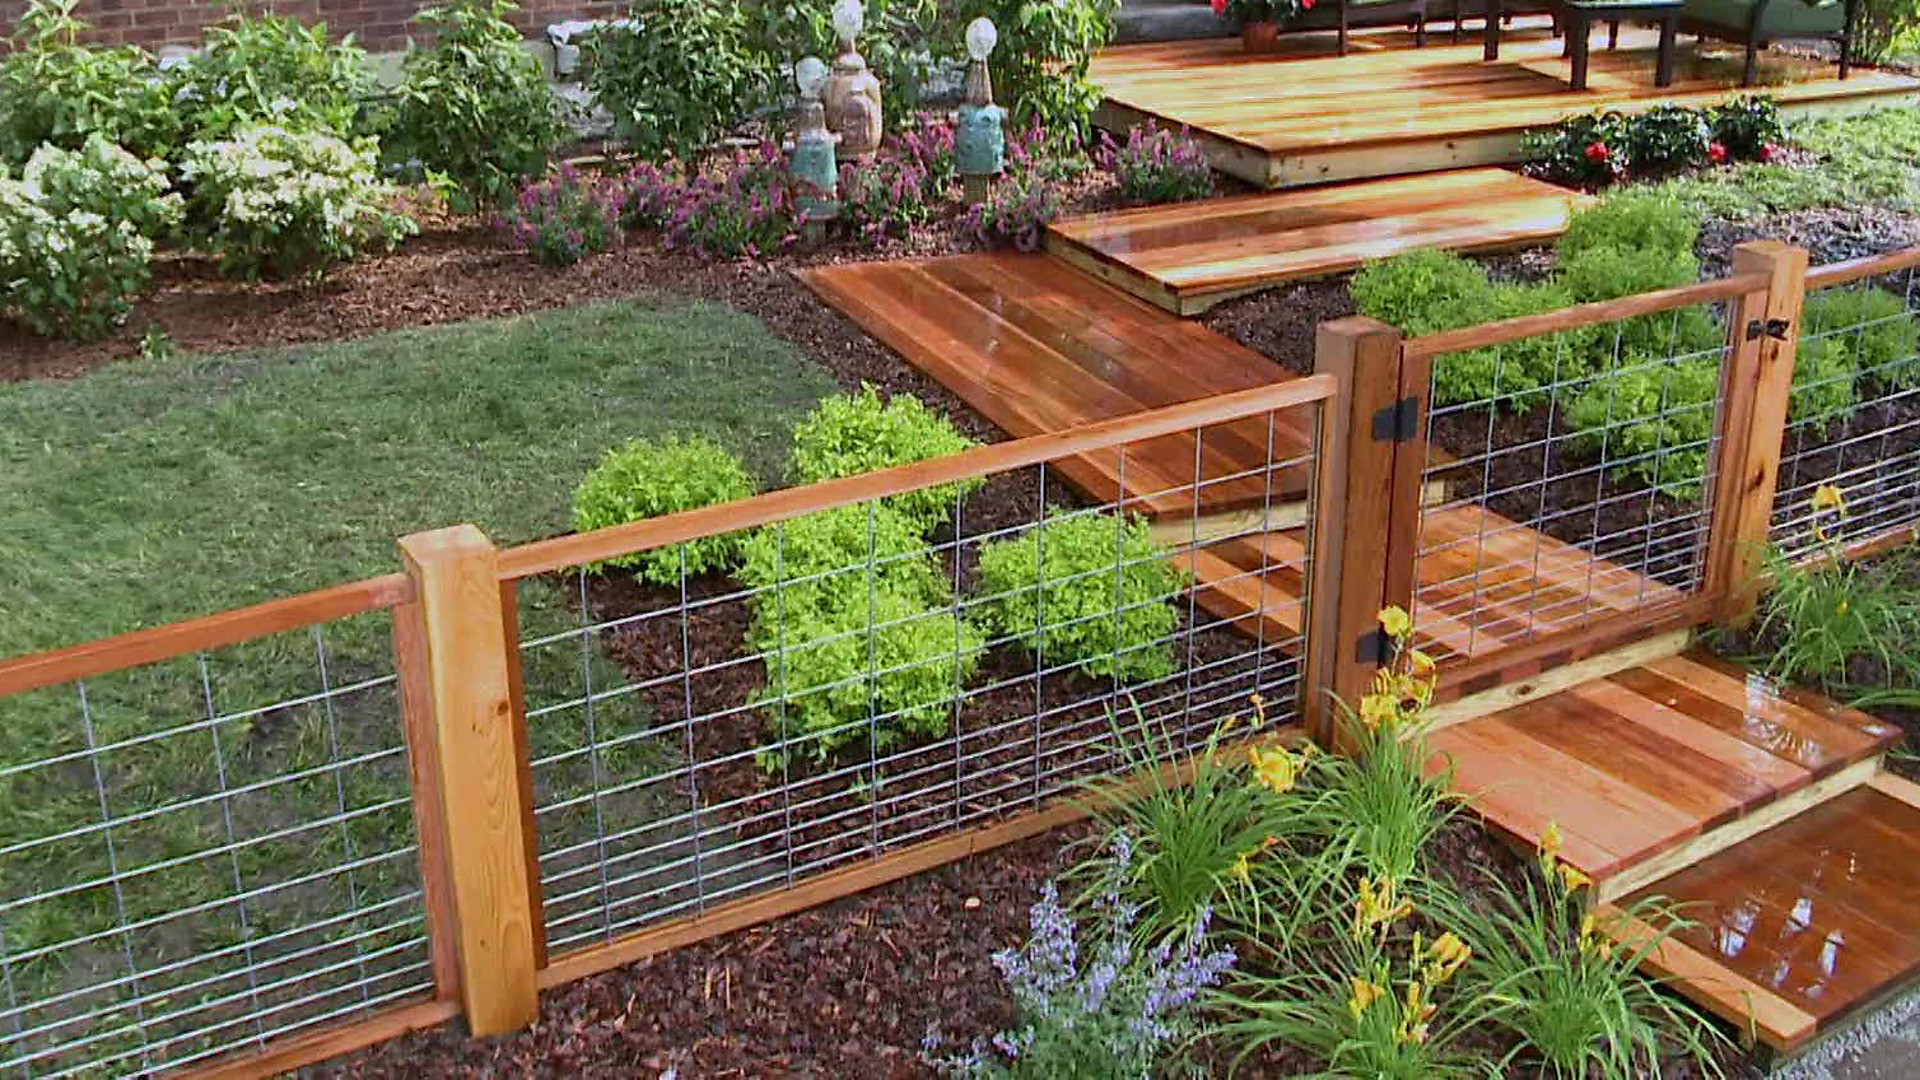 10+ Best Hog Wire Fence Design and Ideas for Your Backyard